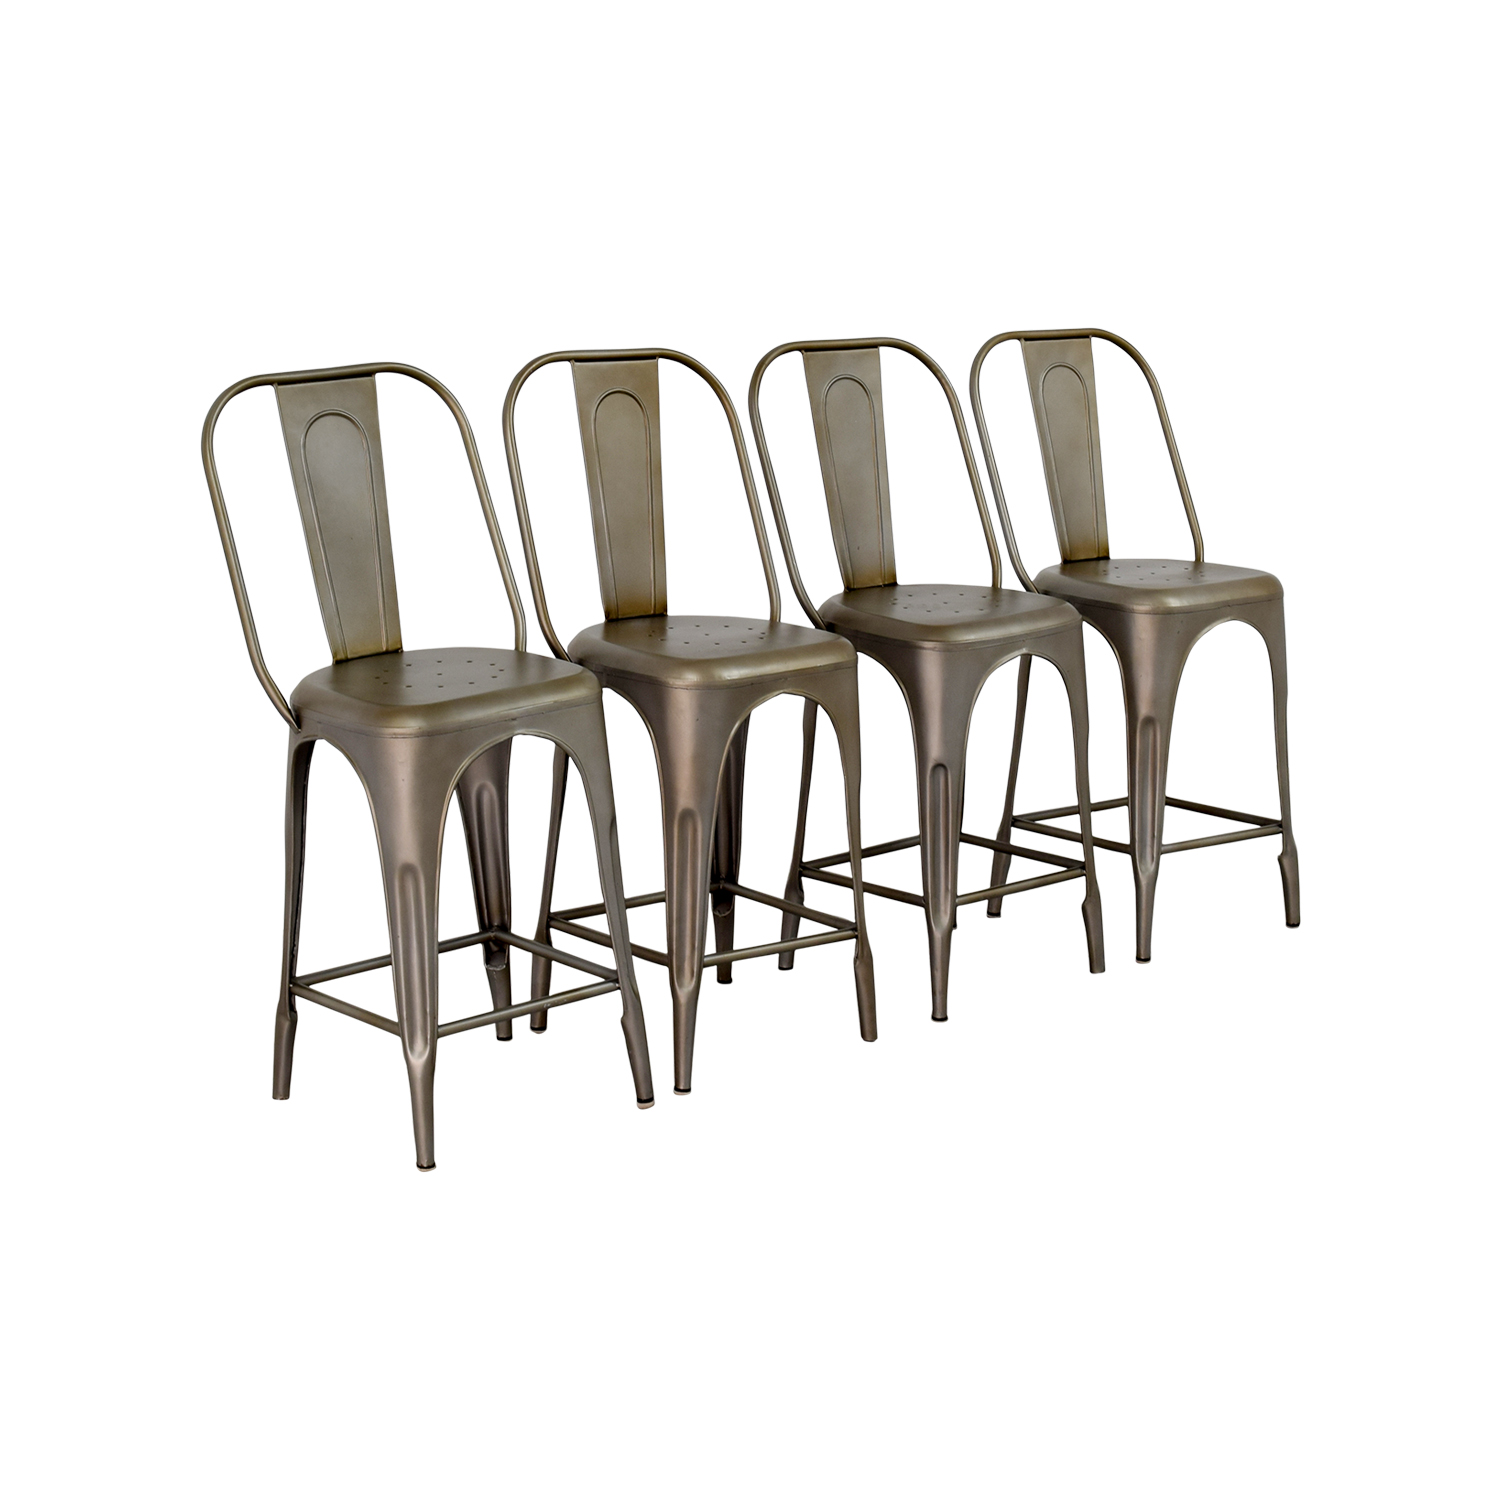 ... Hardware Chairs; Restoration Hardware Restoration Hardware Remy Silver  Stools Price ... Part 67